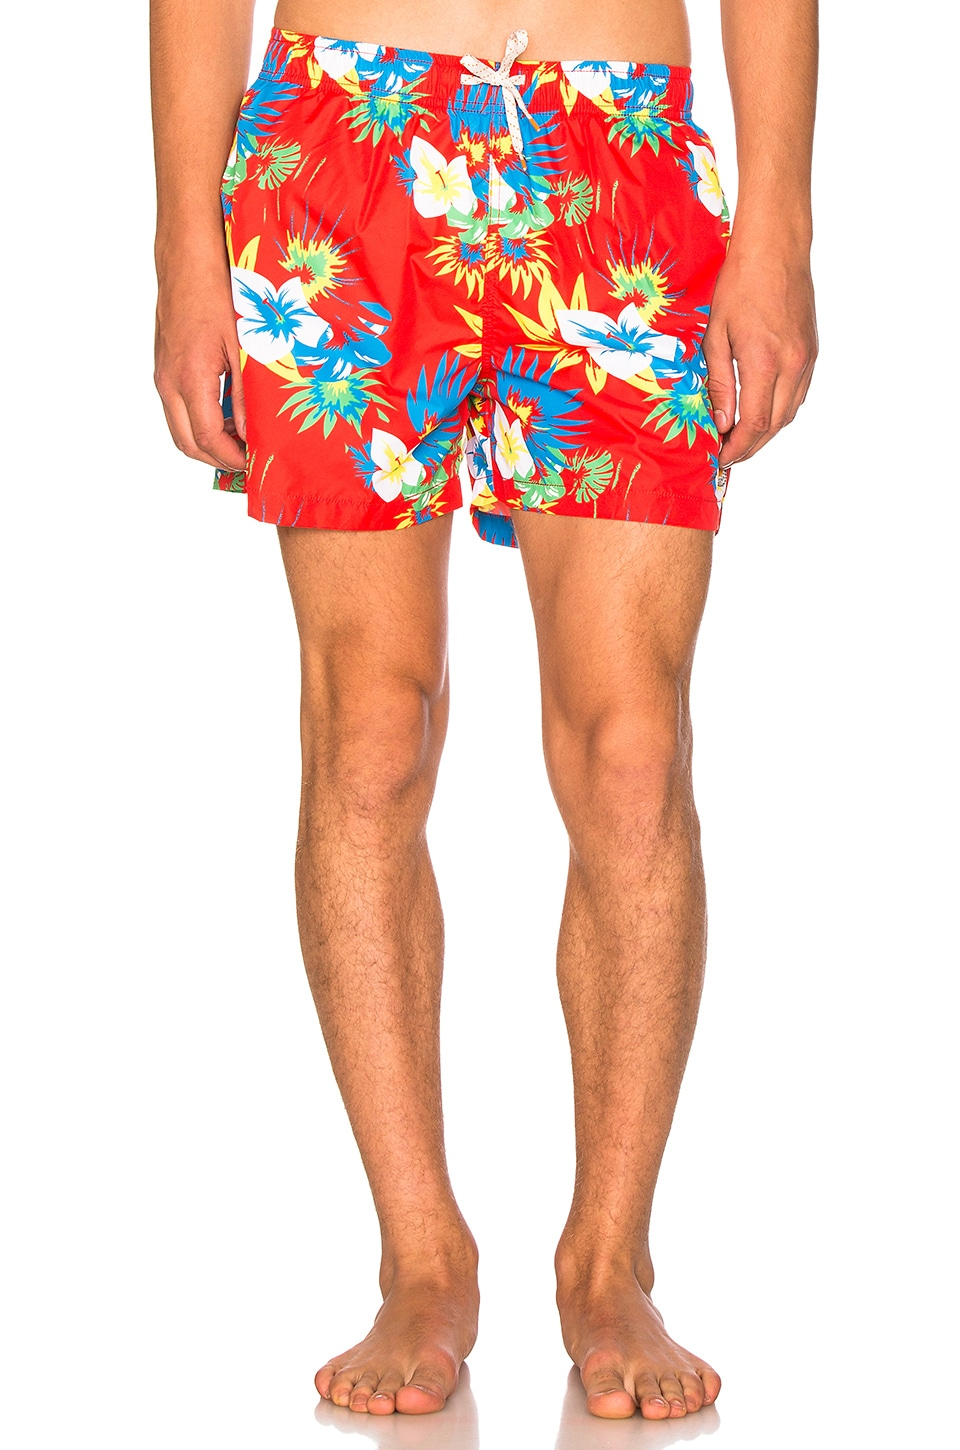 Frawl Packable Shorts by Ambsn